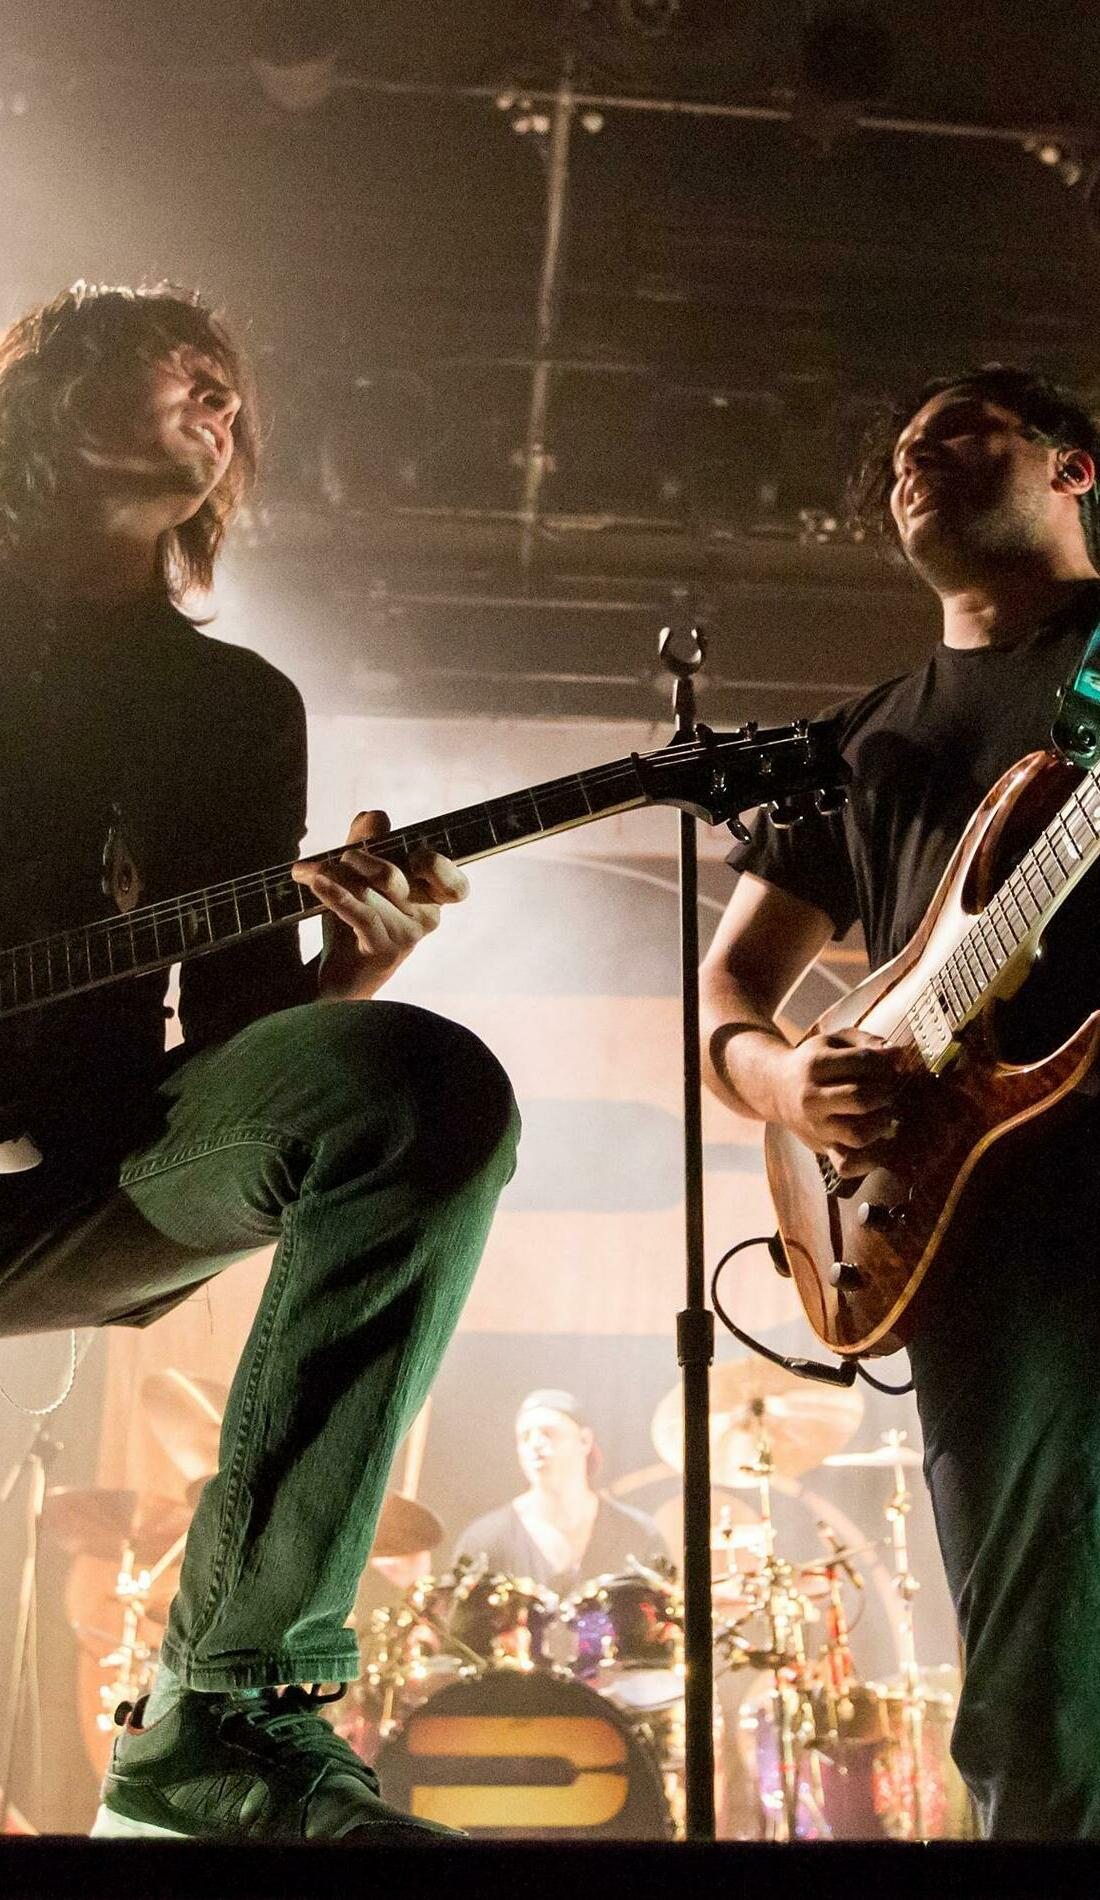 A Periphery live event